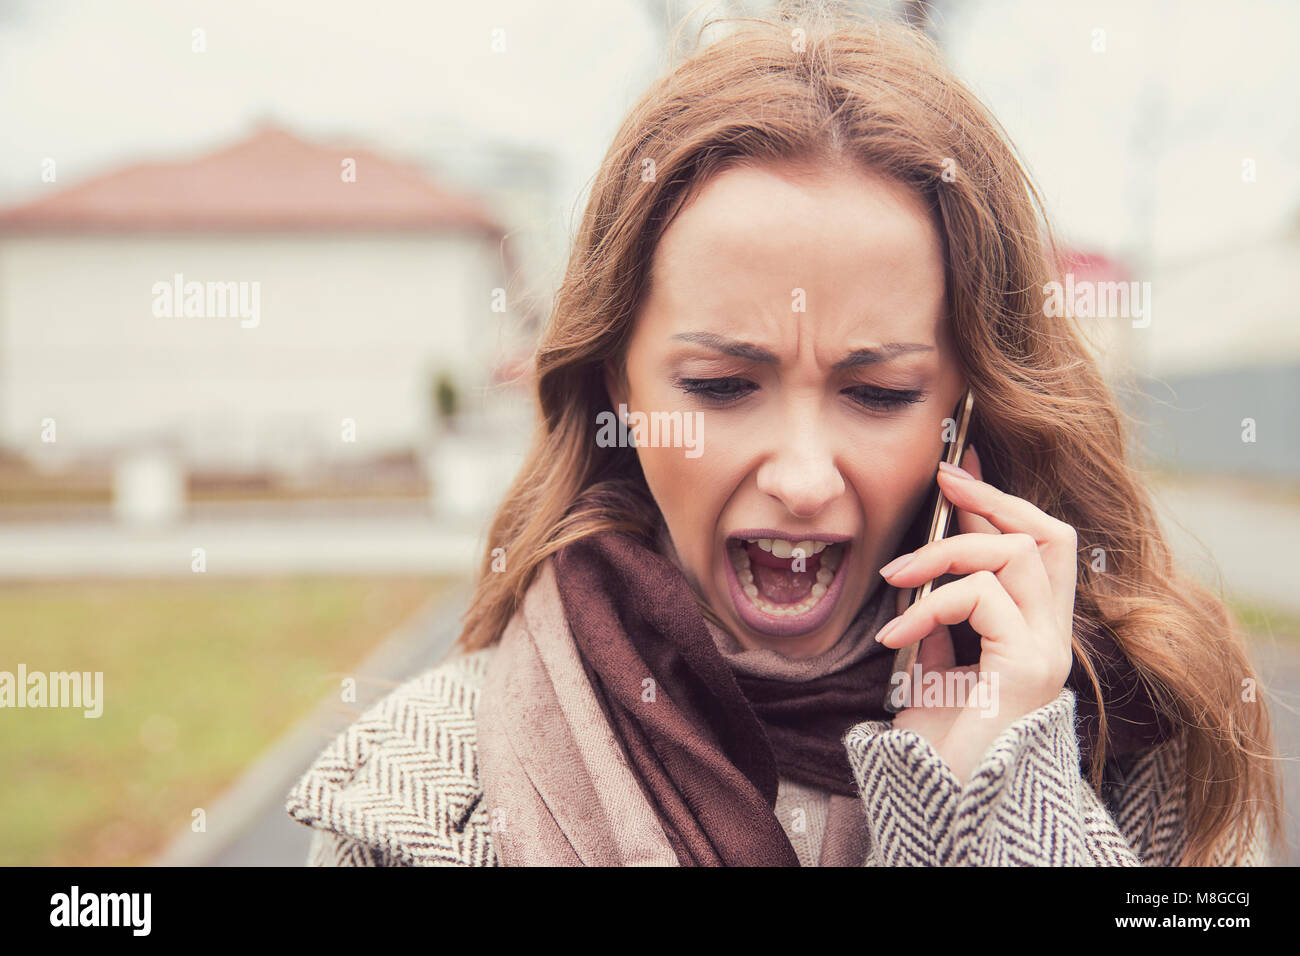 Young brunette in coat talking on a phone outside and screaming in stress having bad breakup. - Stock Image